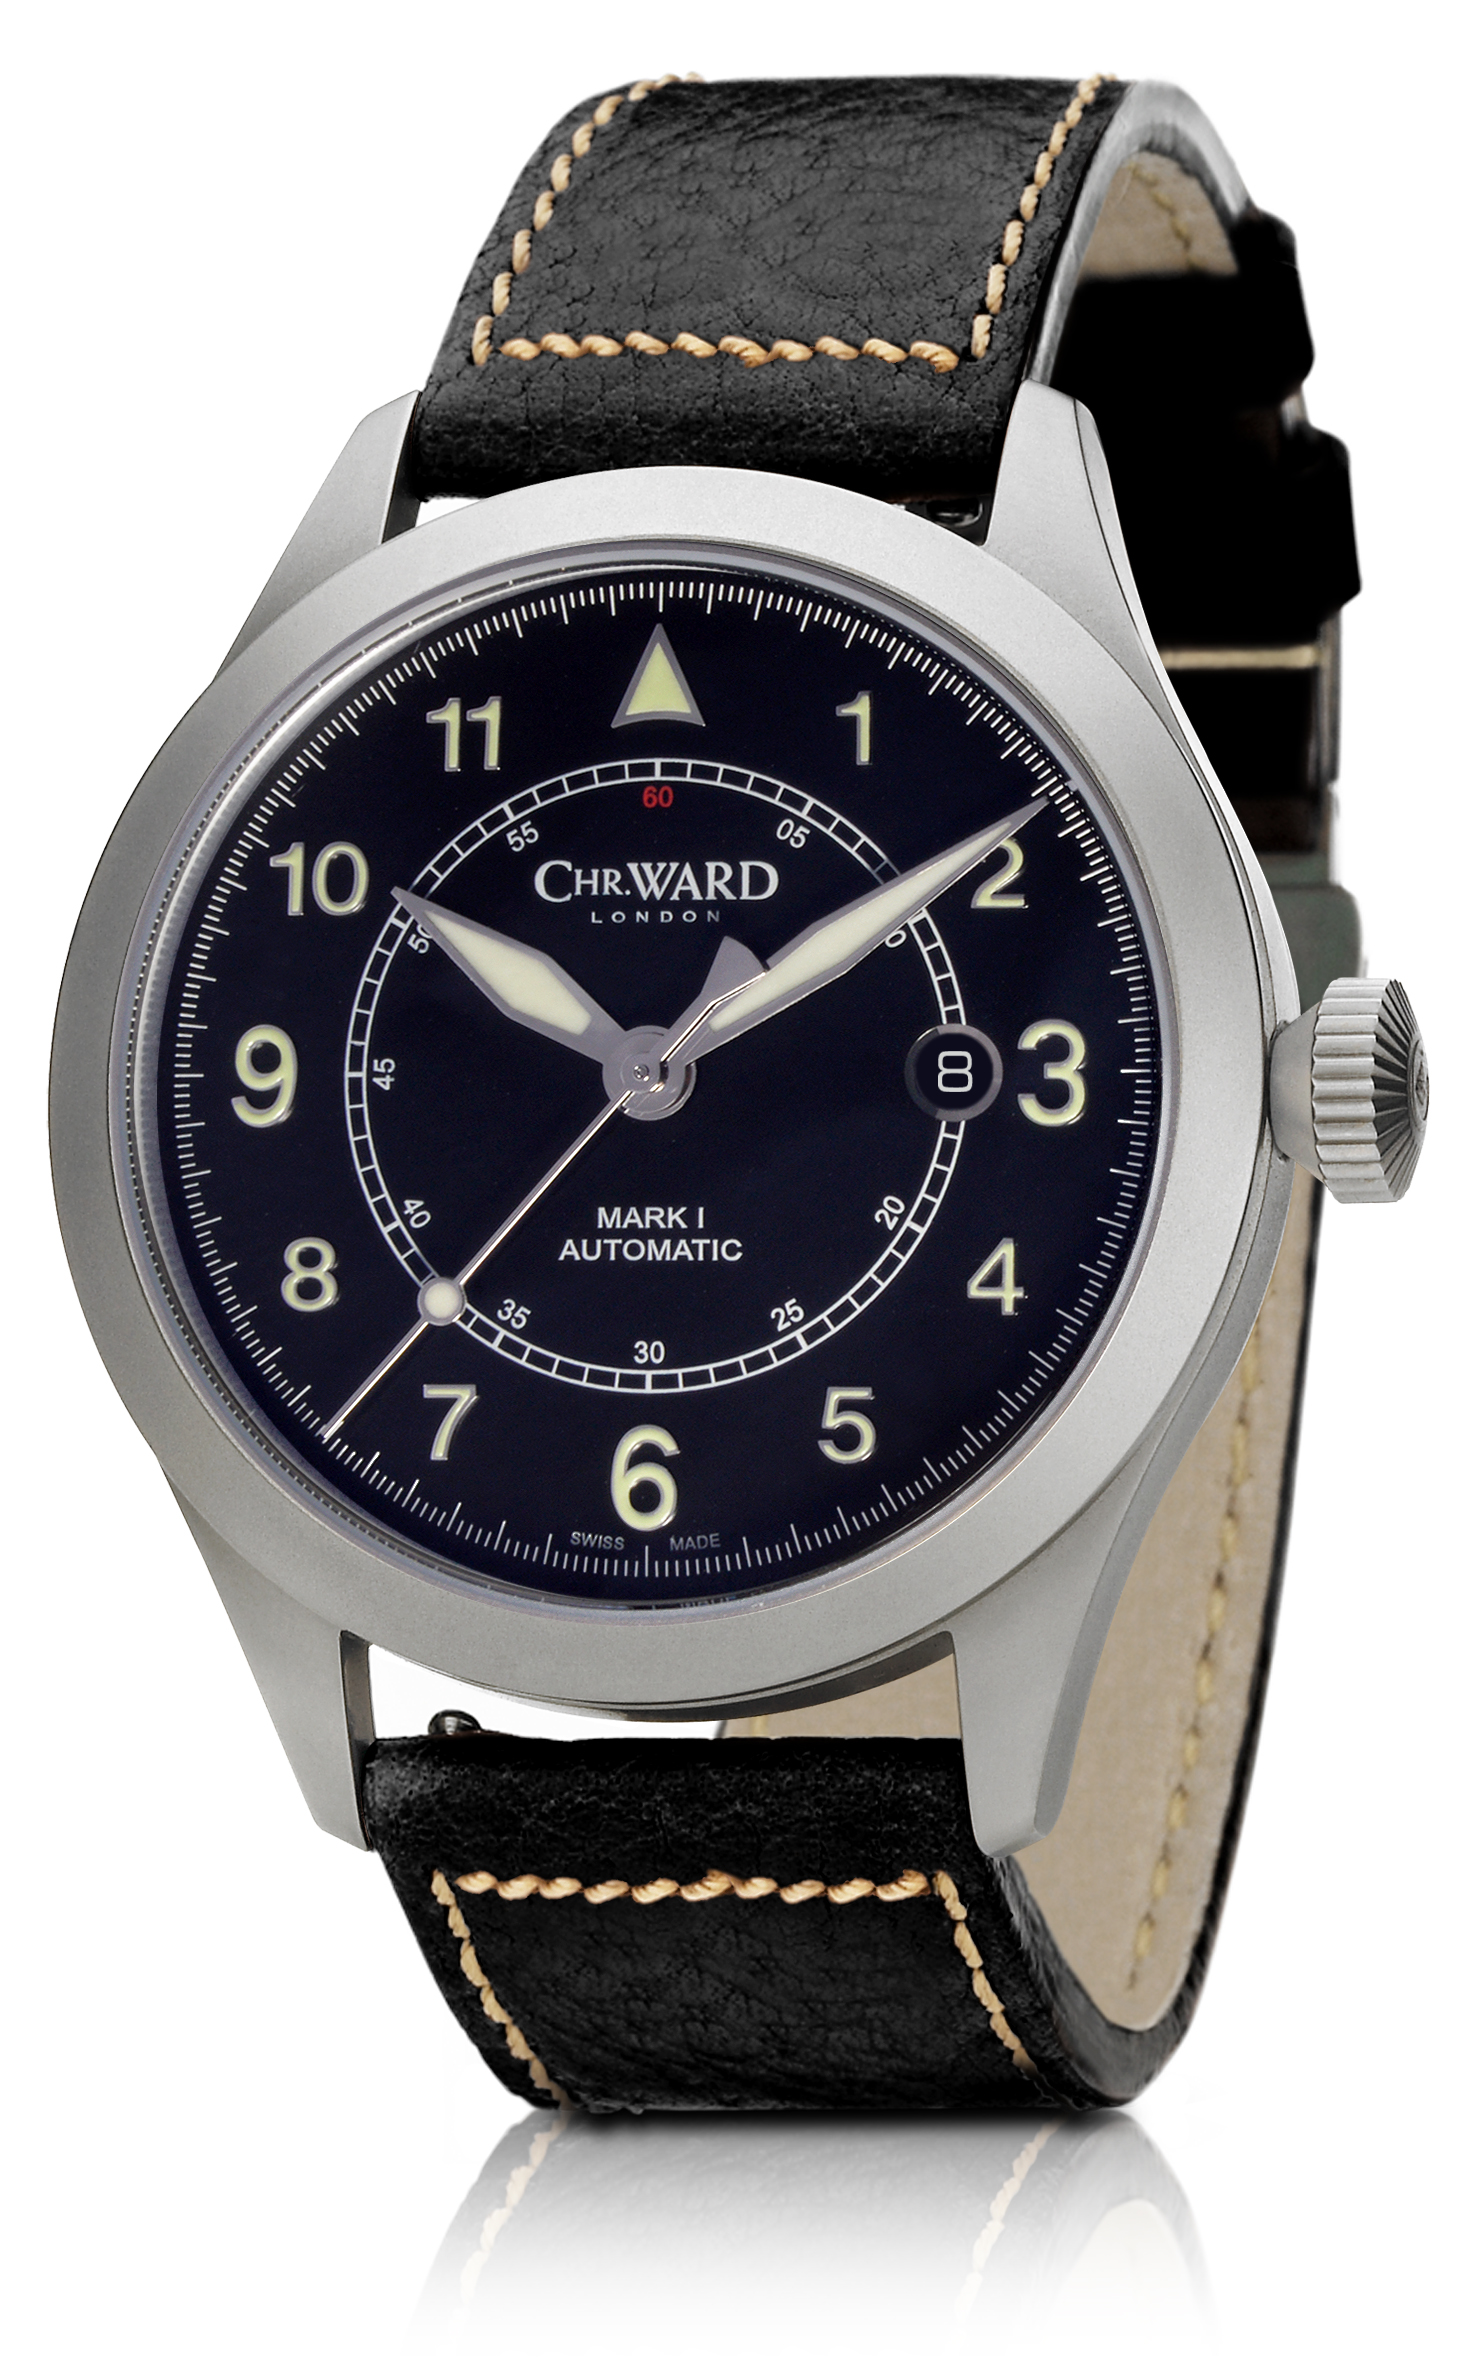 Christopher Ward C10 Aviator - Men's Watch Style